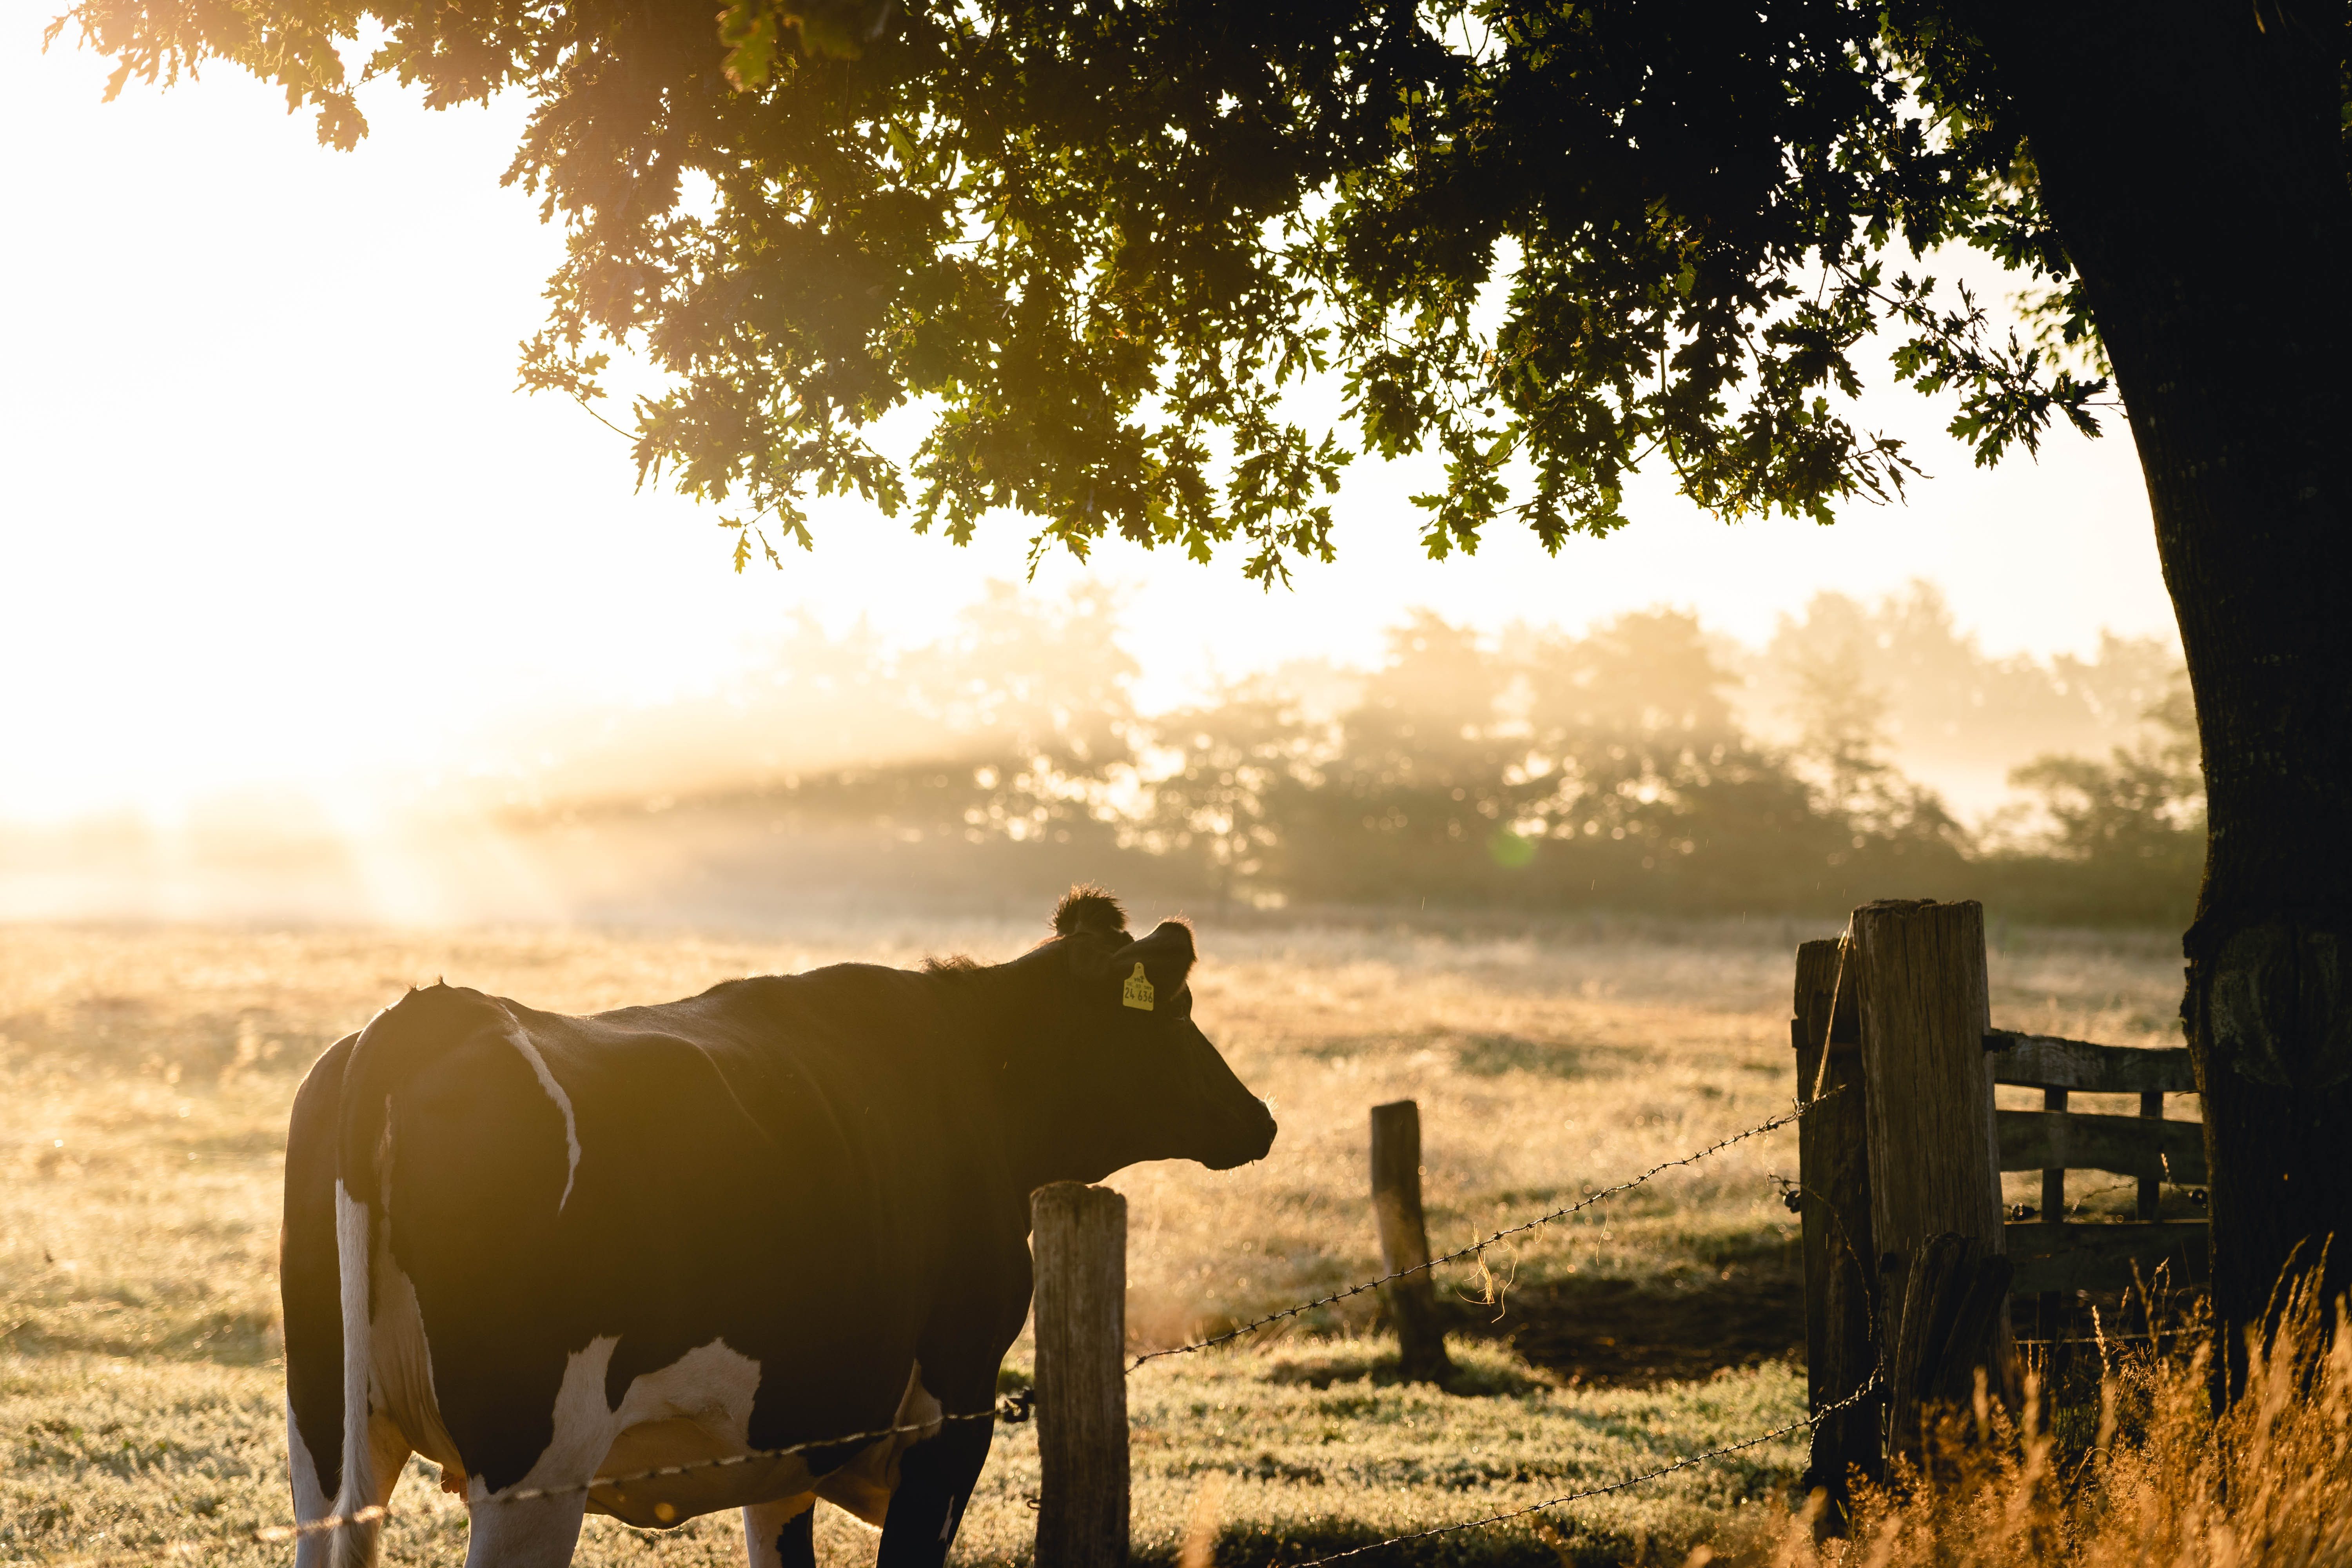 Black and White Cow in Front of Green Leafed Tree